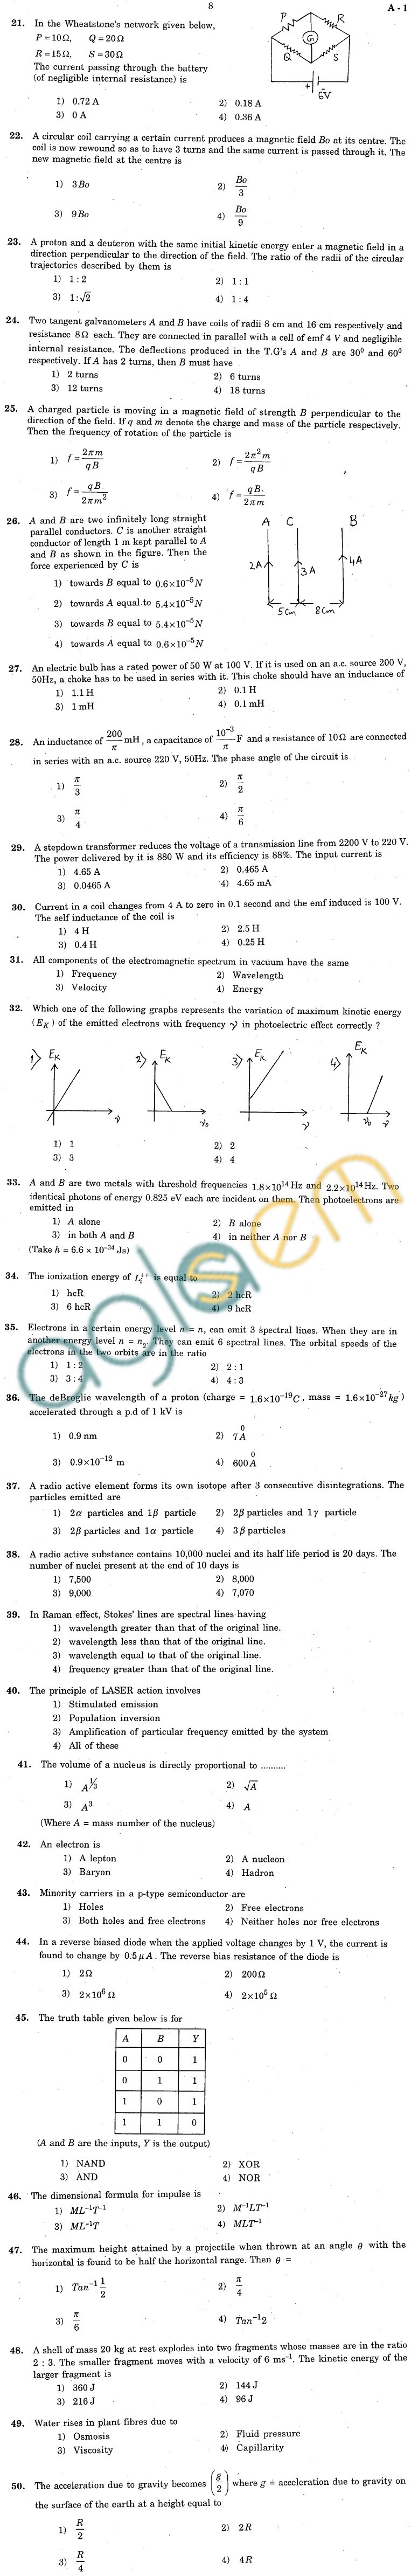 KCET 2007 Question Paper - Physics And Chemistry